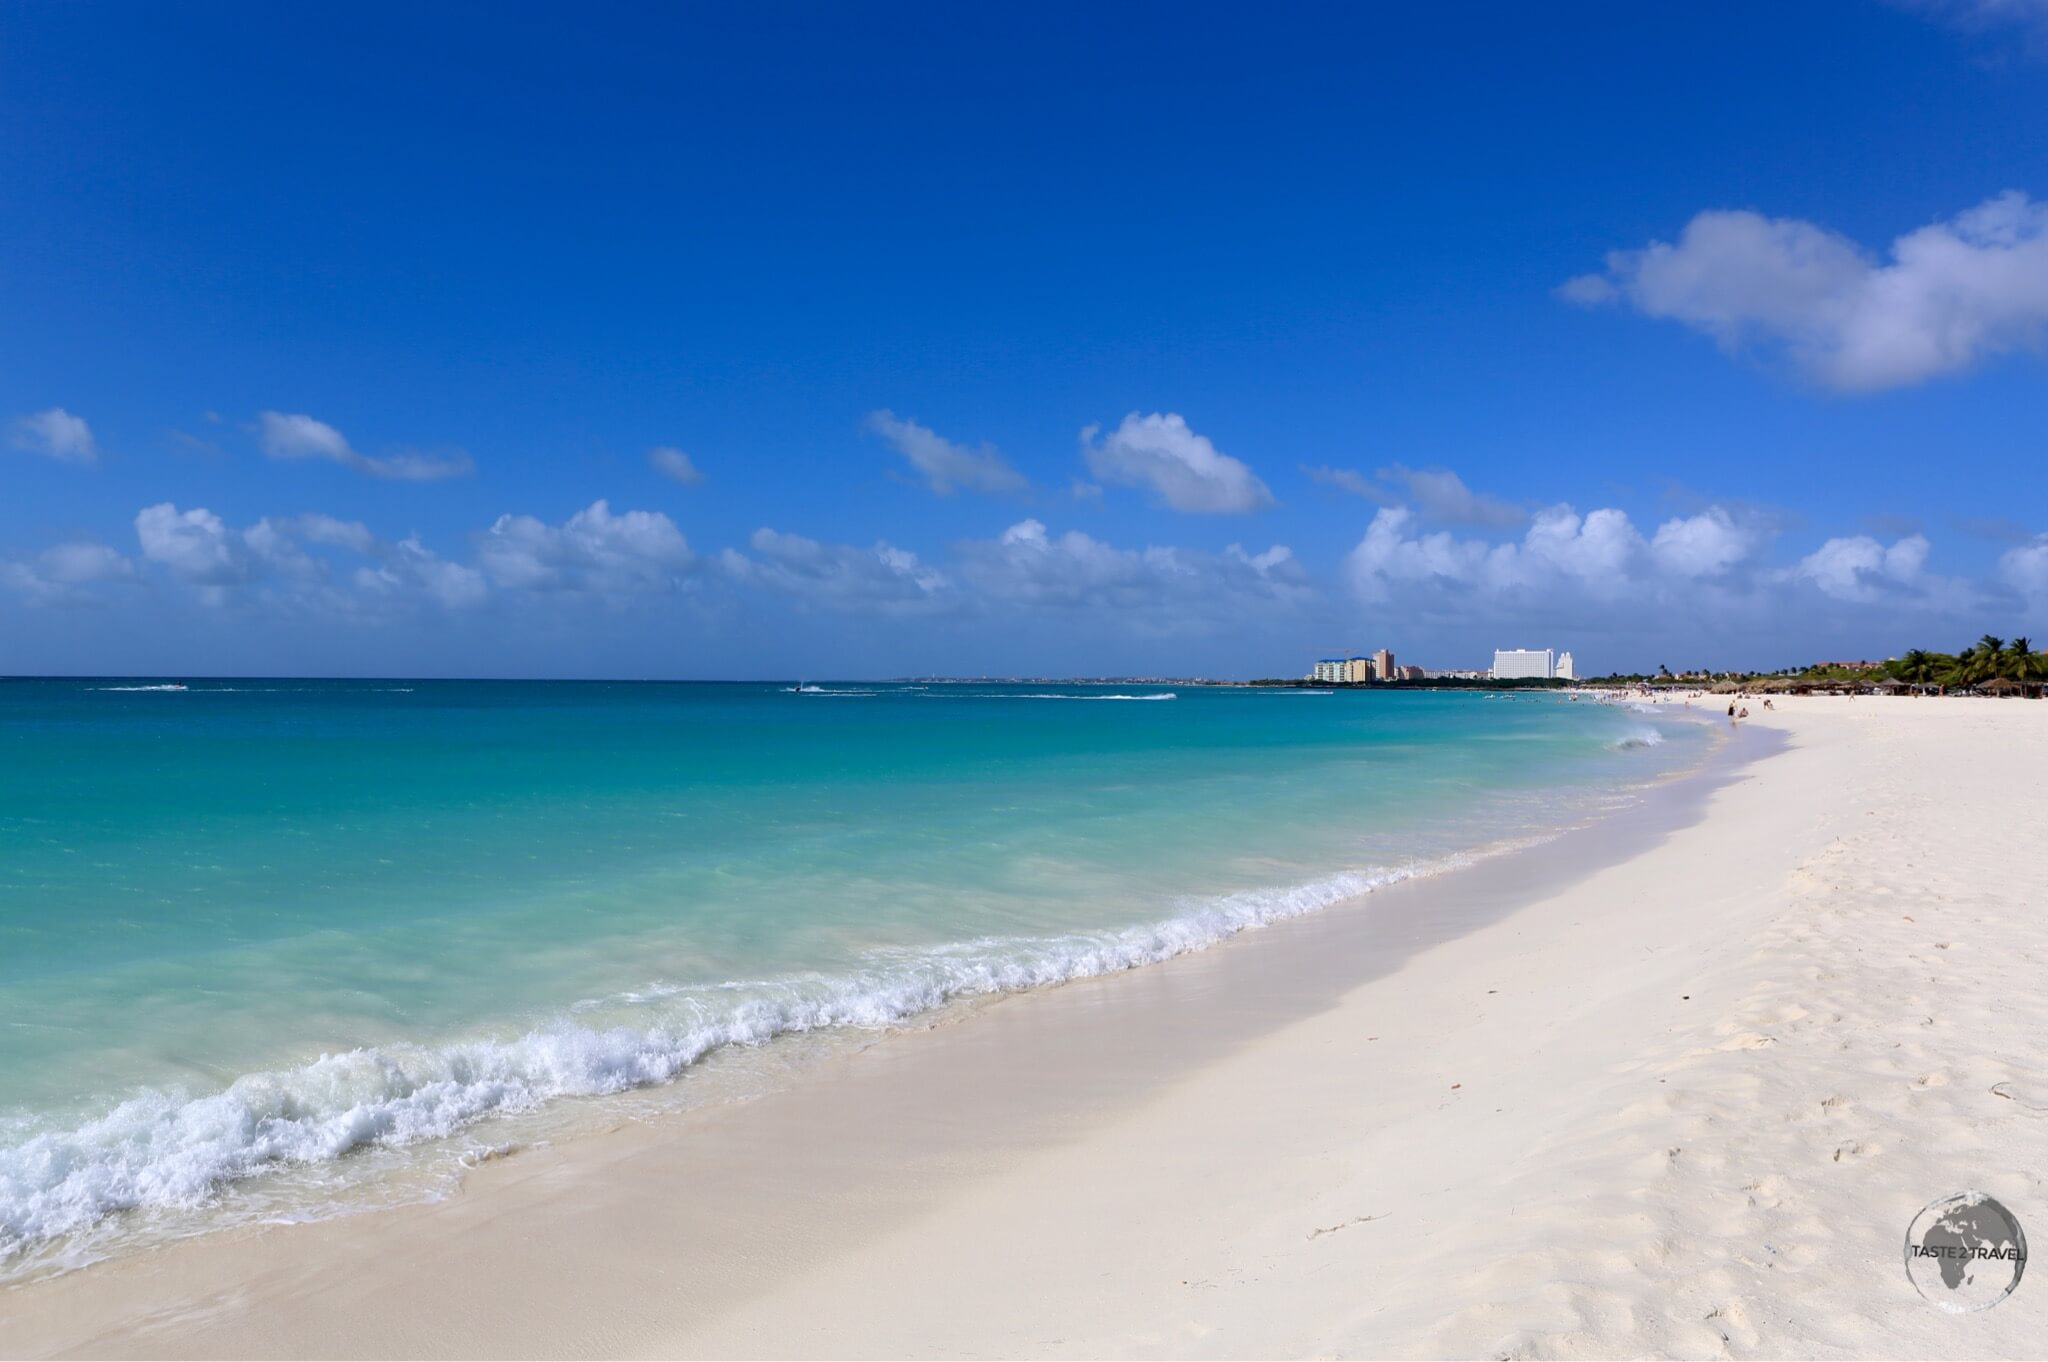 Divi beach is one of the finest beaches on Aruba.